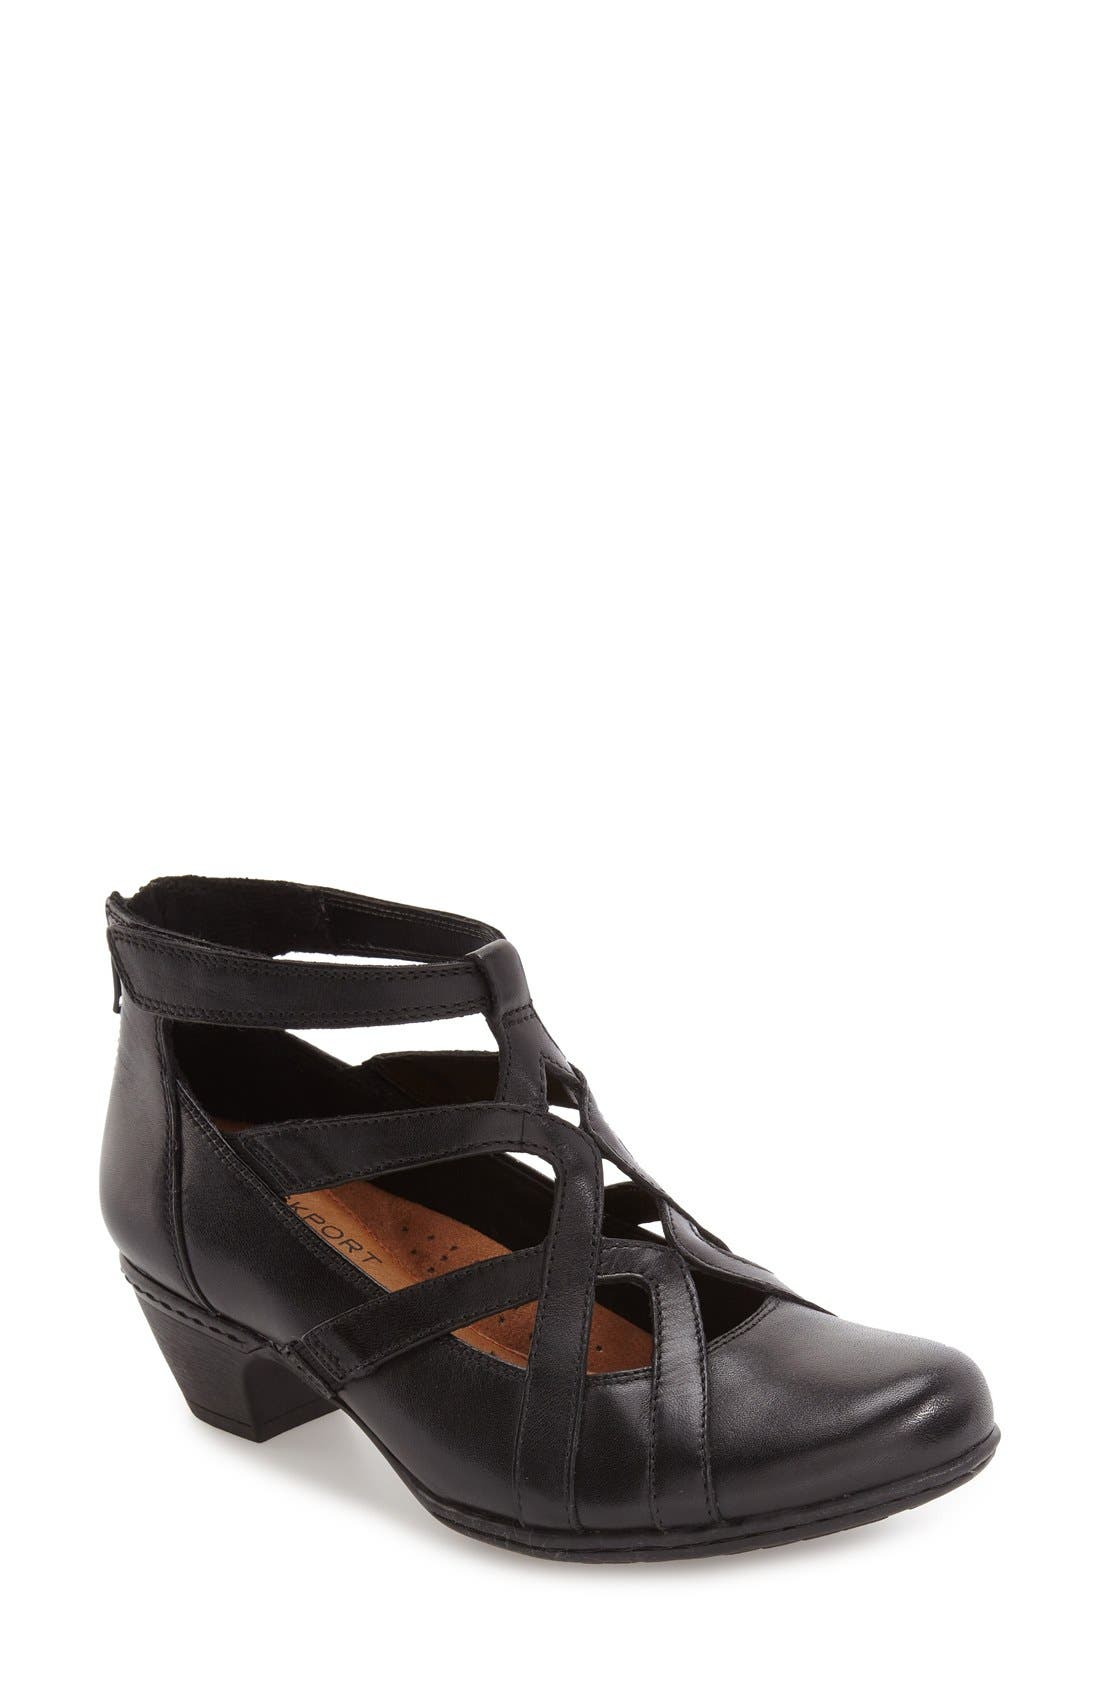 Adrina Pump,                             Main thumbnail 1, color,                             Black Leather